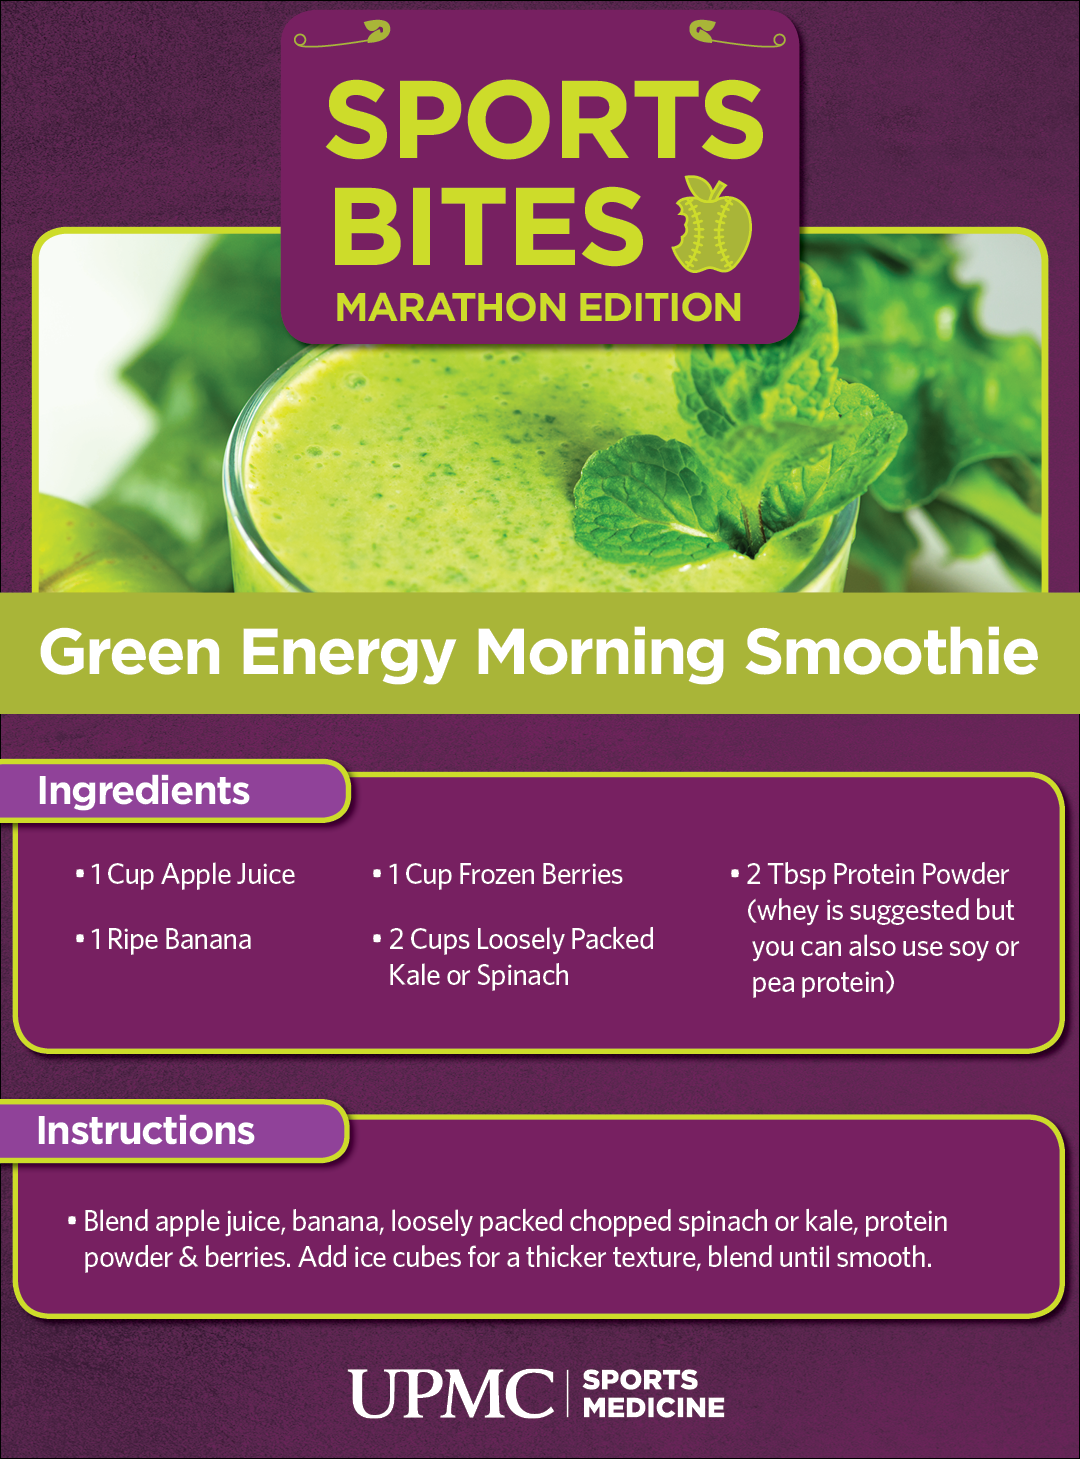 Learn how to make this green energy smoothie recipe